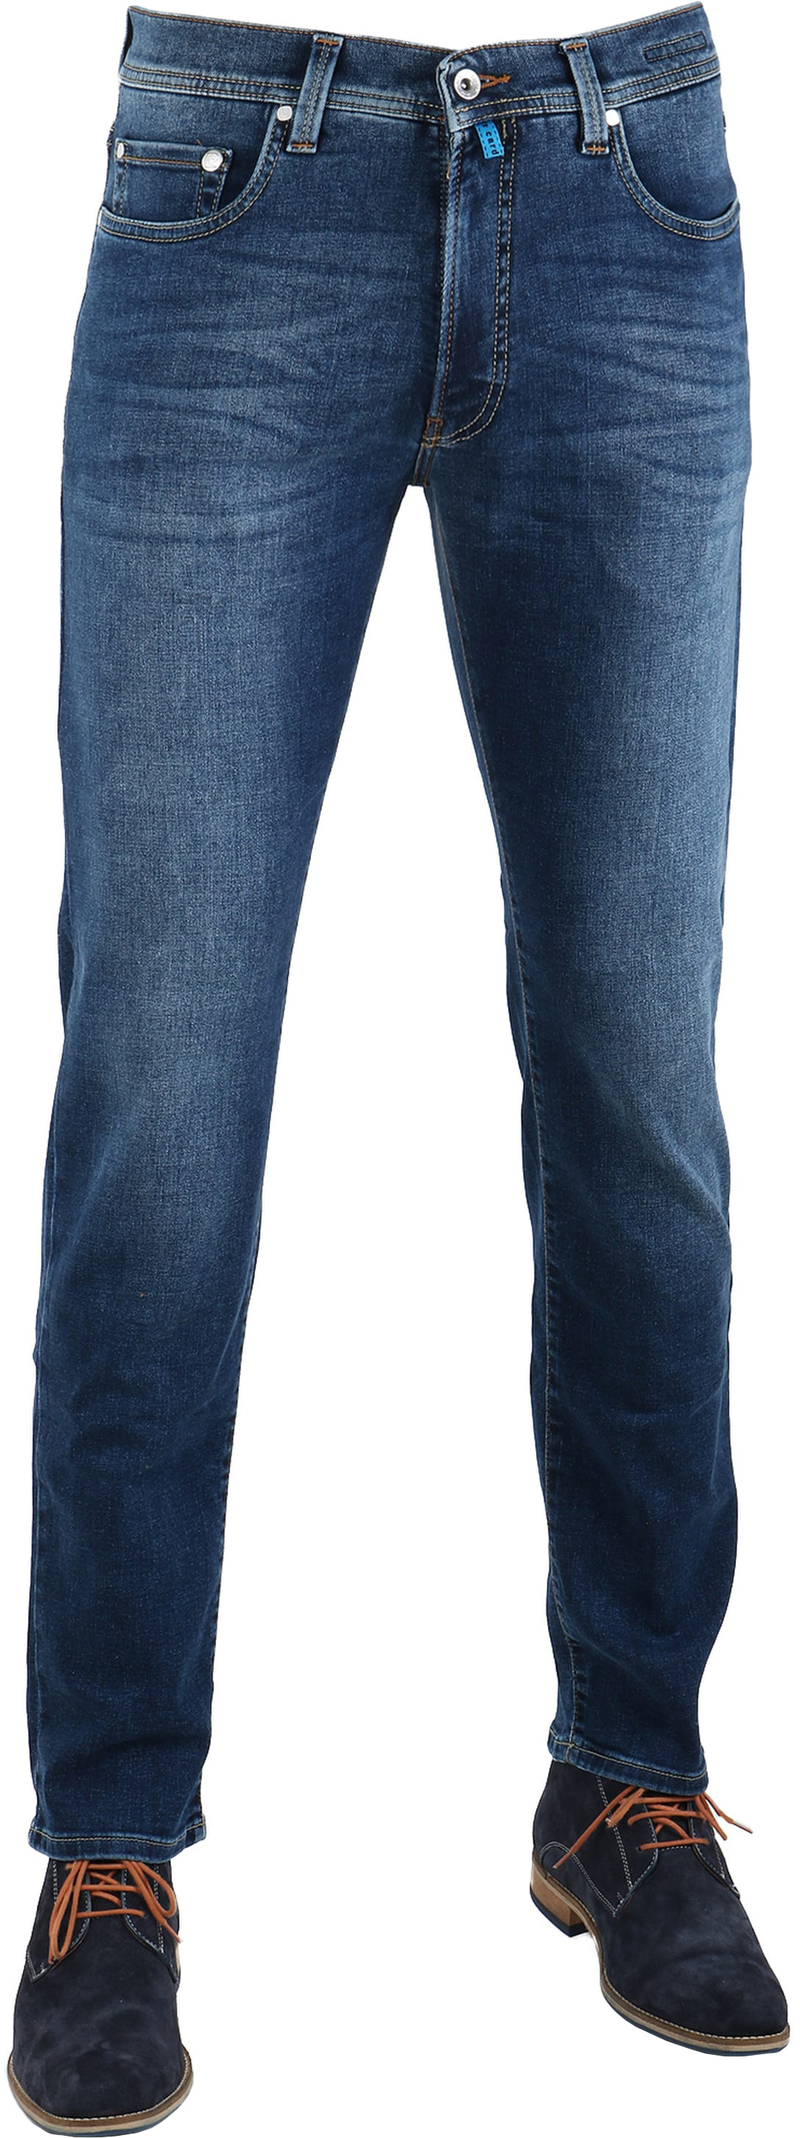 Pierre Cardin Lyon Jeans Future Flex 3451 photo 0